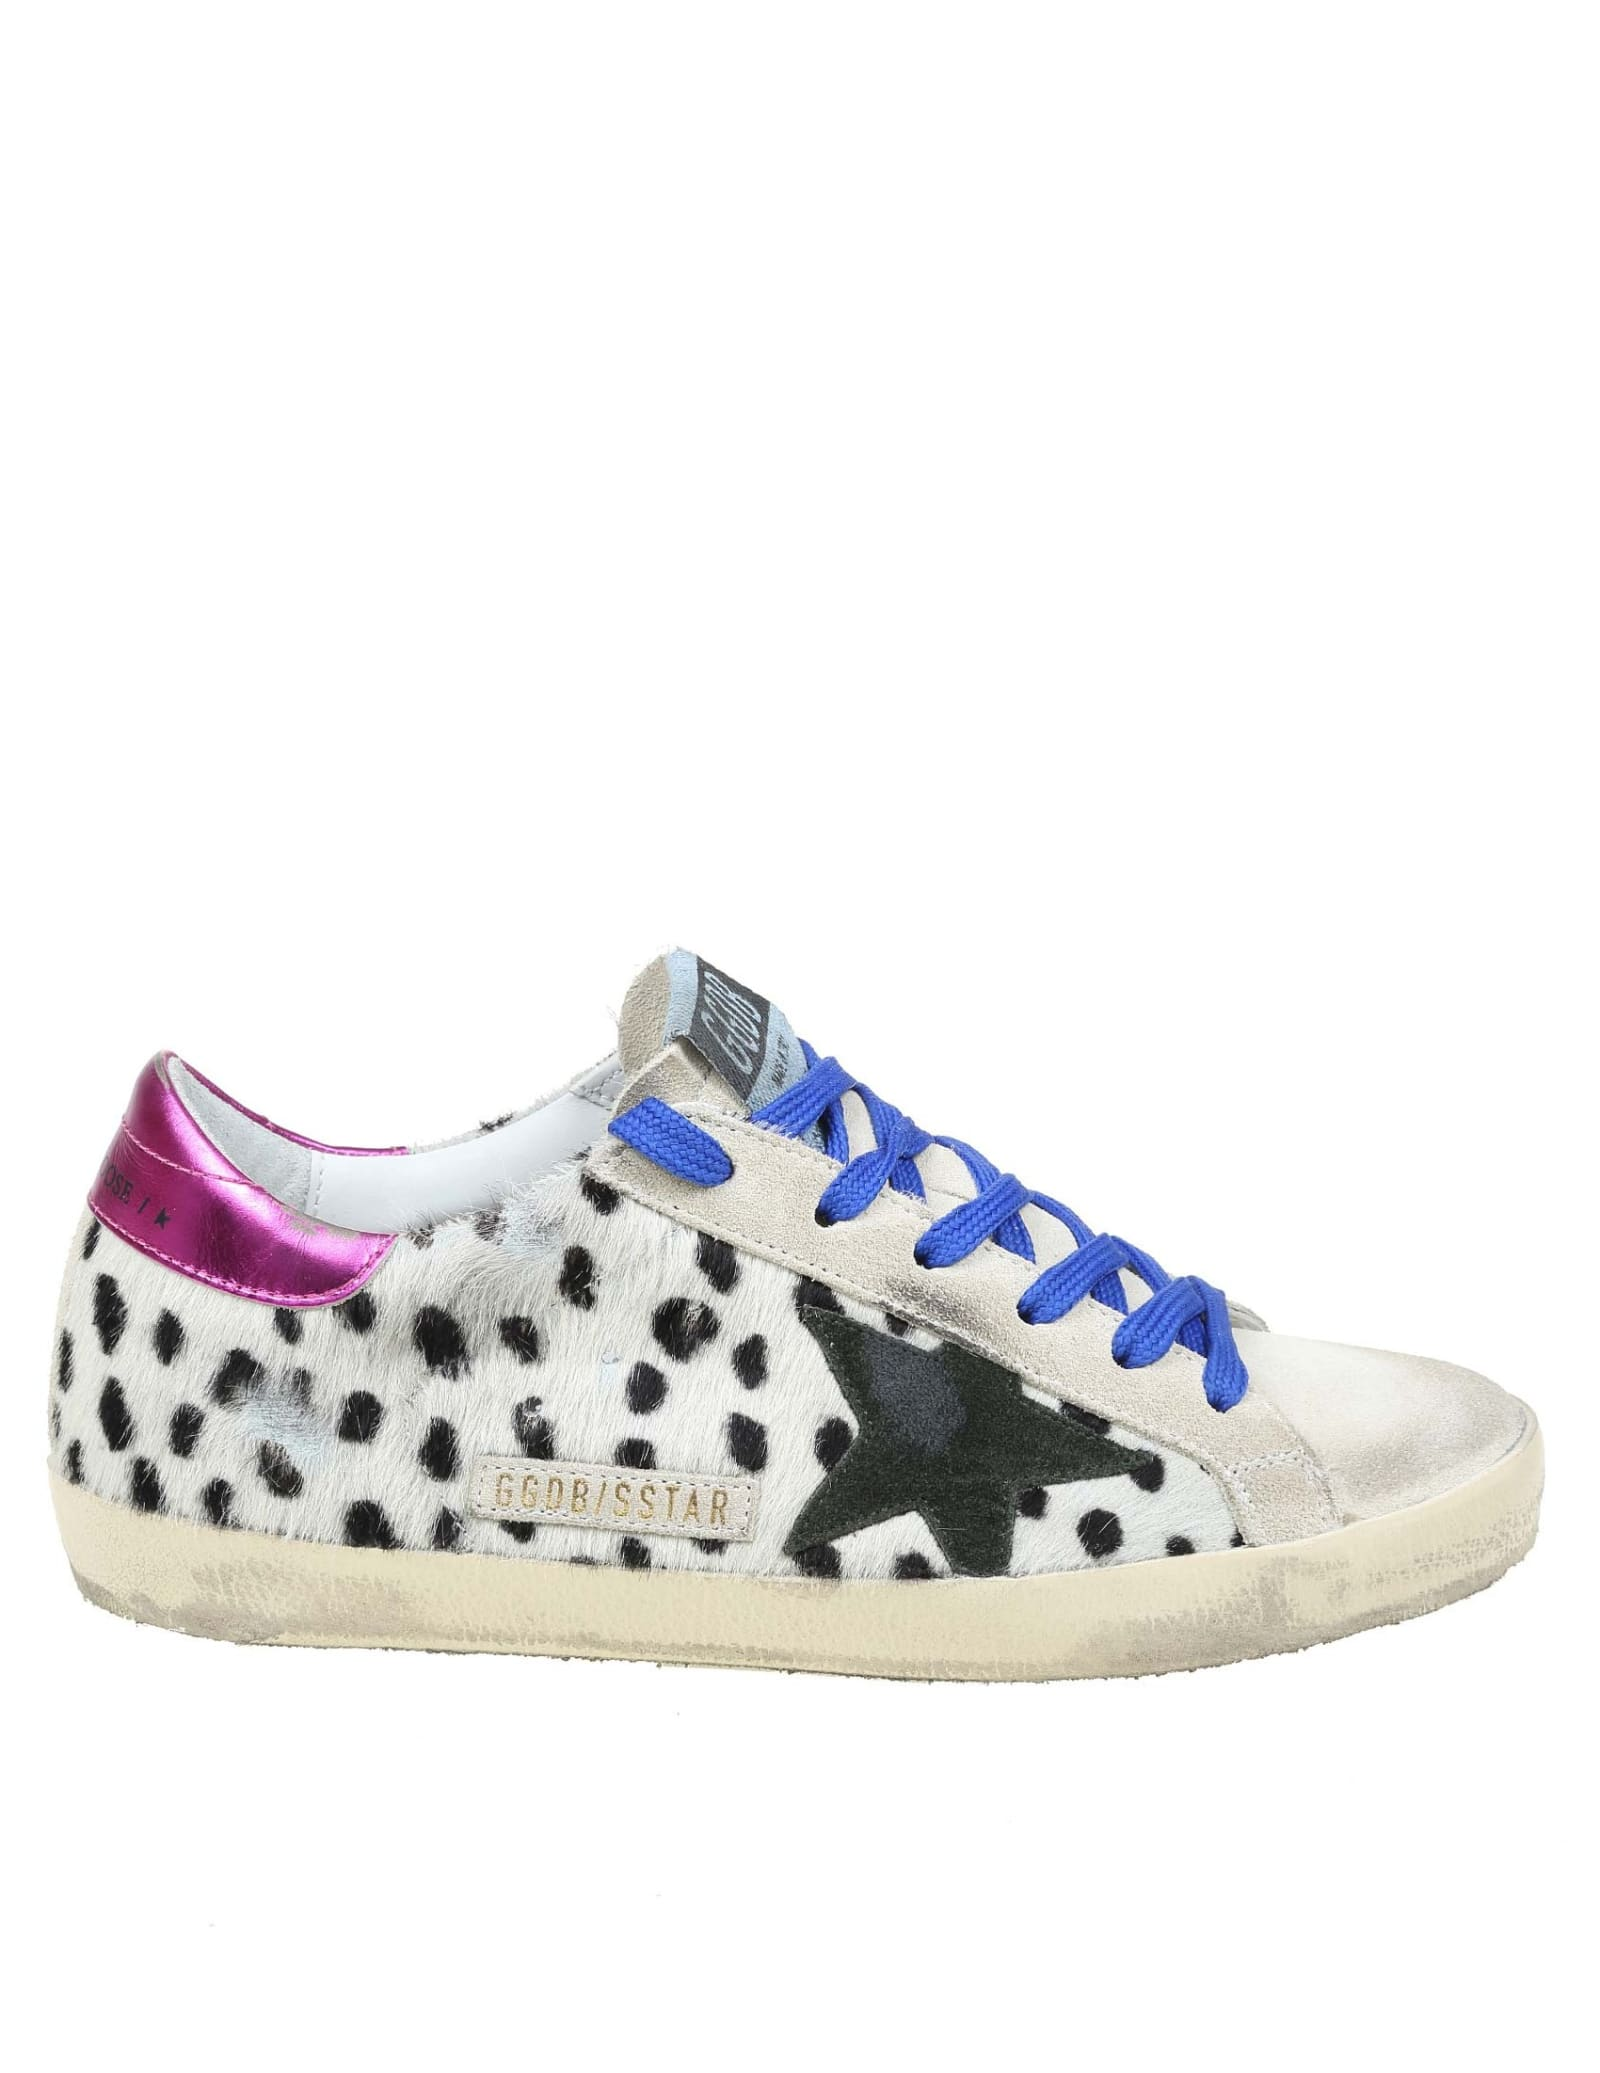 Golden Goose Superstar Sneakers In White And Black Horse